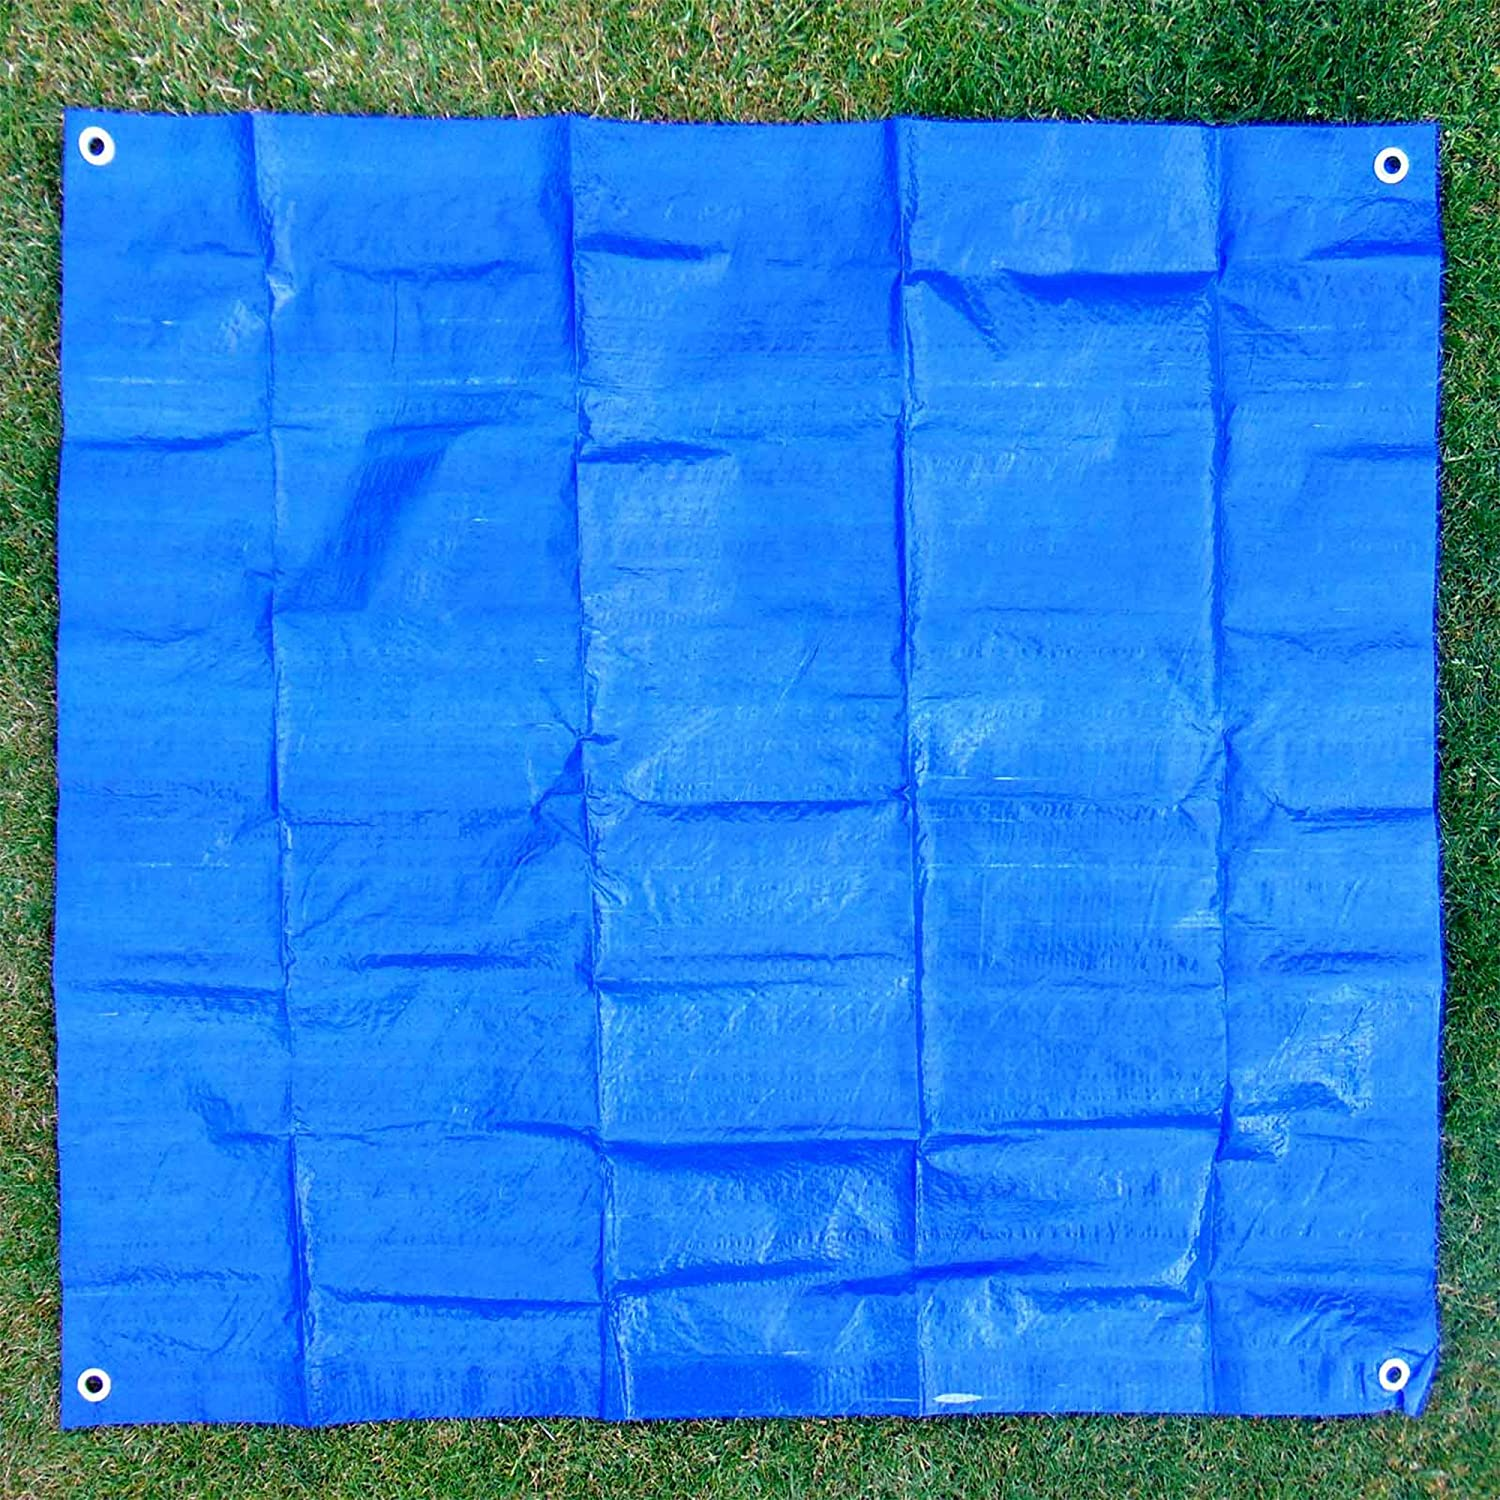 New Waterproof Outdoor Table Garden BBQ Grill Cover General Purpose Tarpaulin 1m x 85cm Heavy Duty Blue Polyester Scratch Resistant Durable Tarp Cover for Protection